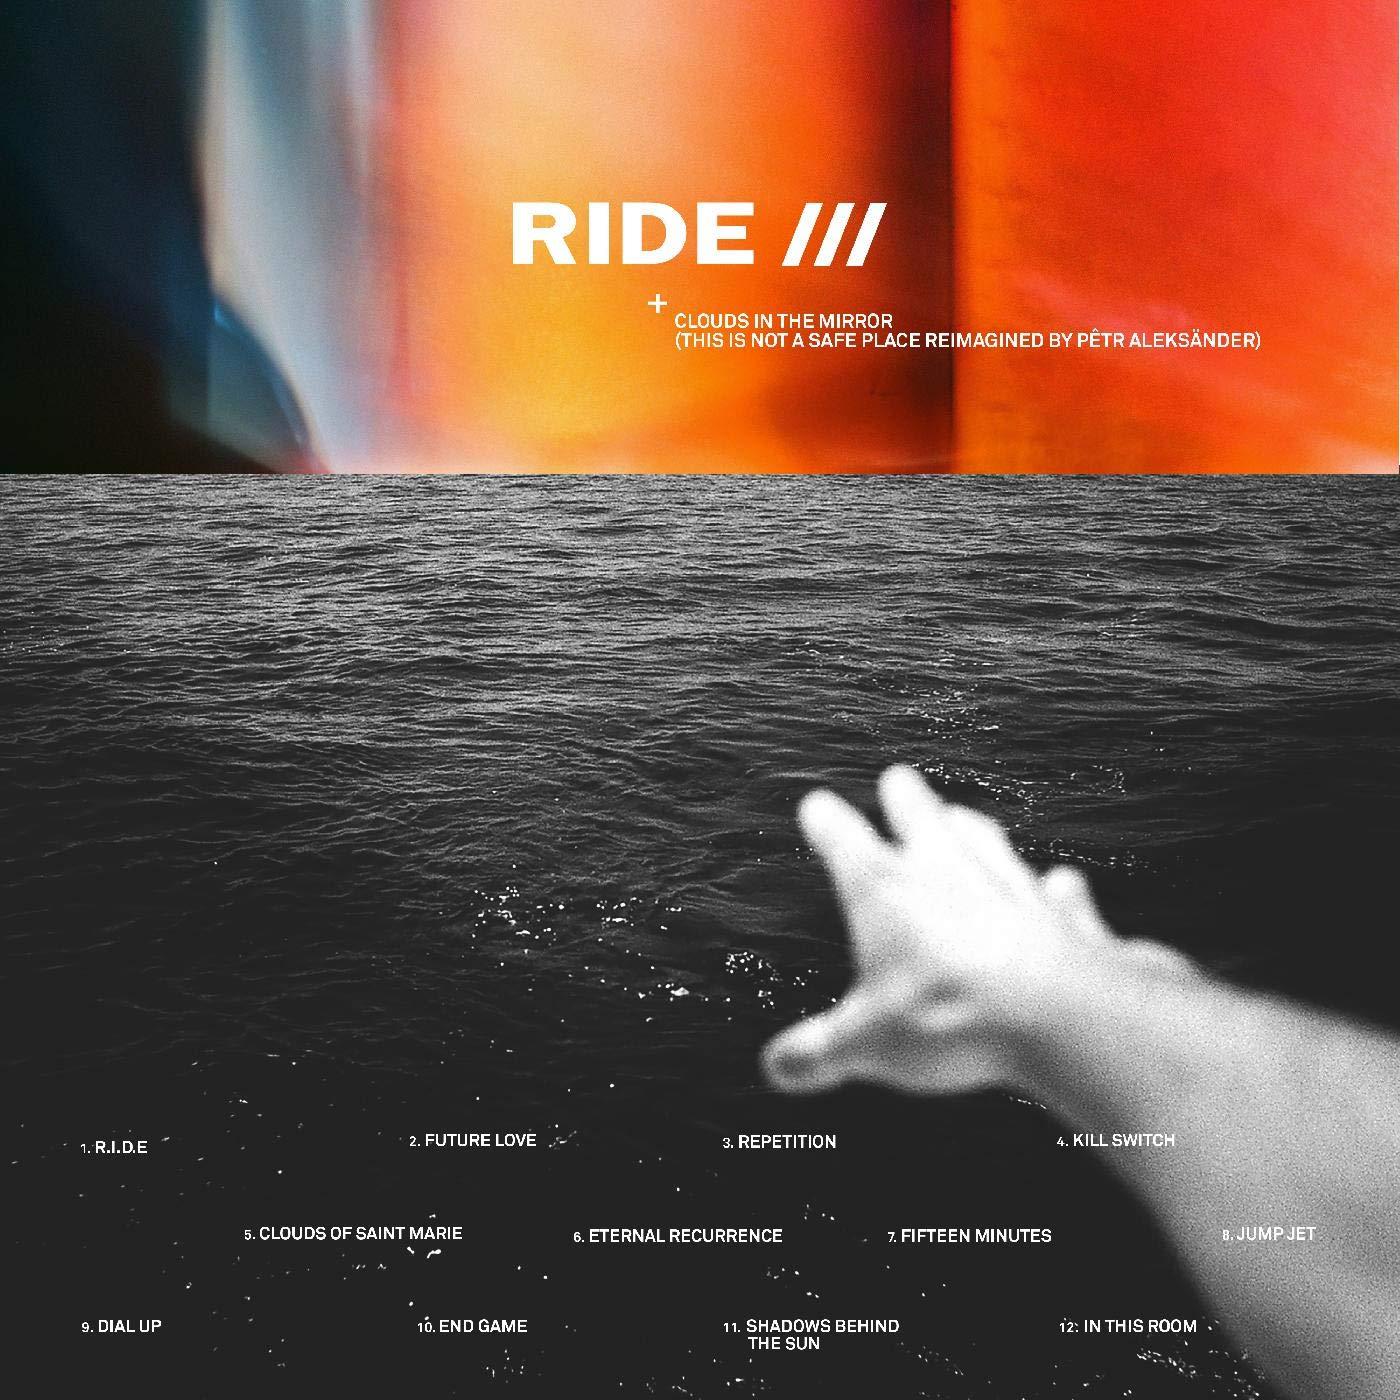 Ride - Clouds In The Mirror (This Is Not A Safe Place Reimagined By Petr Aleksander) [LP]